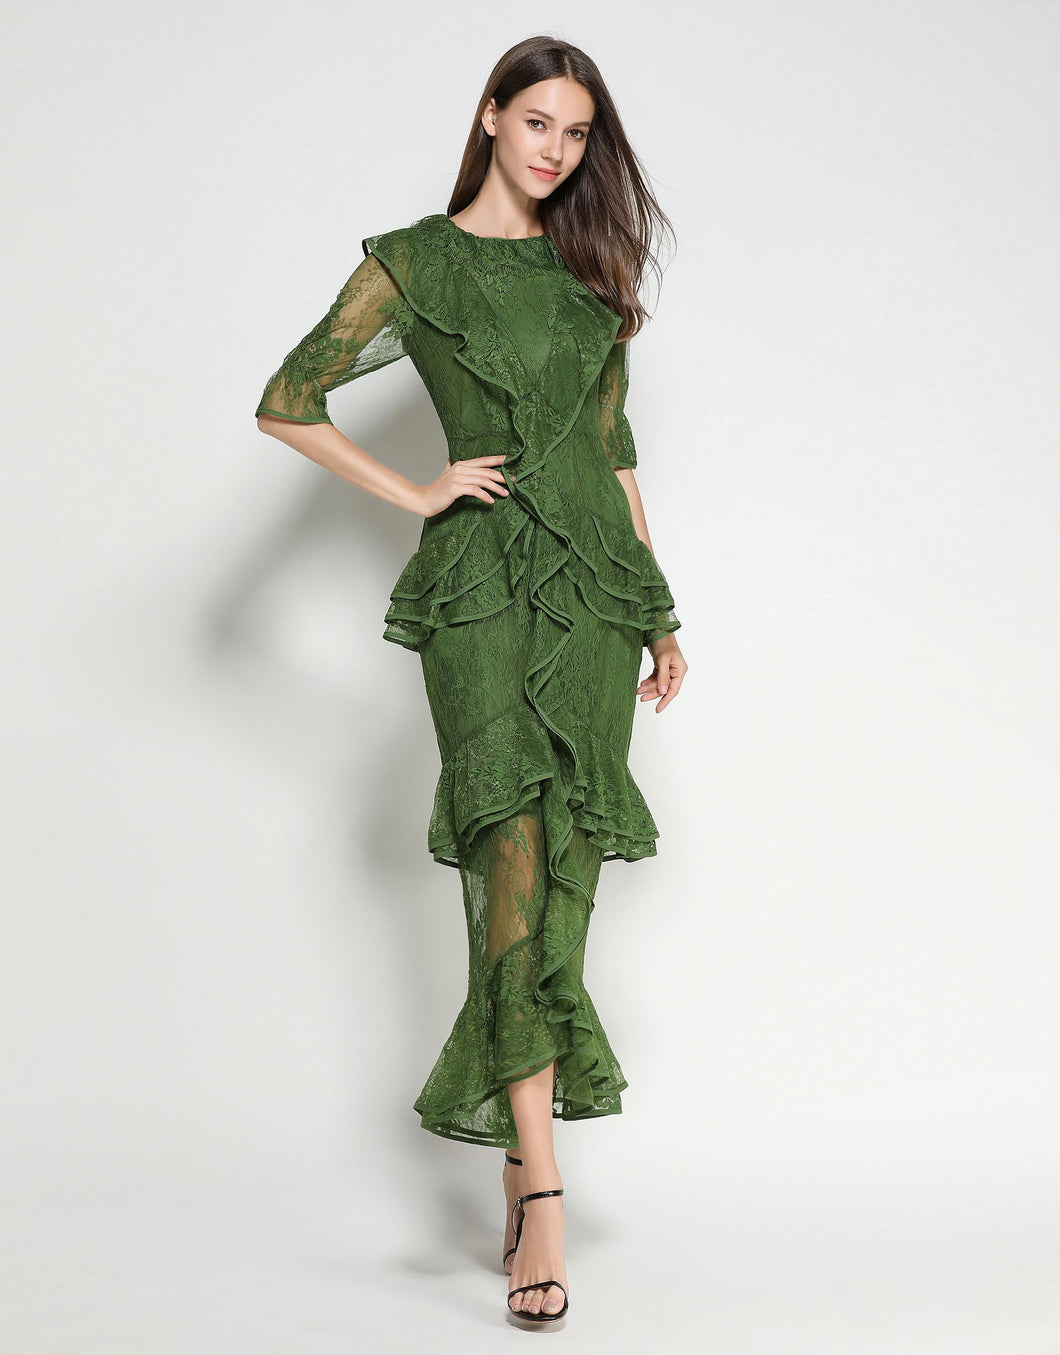 Emerald Lace Ruffle Dress